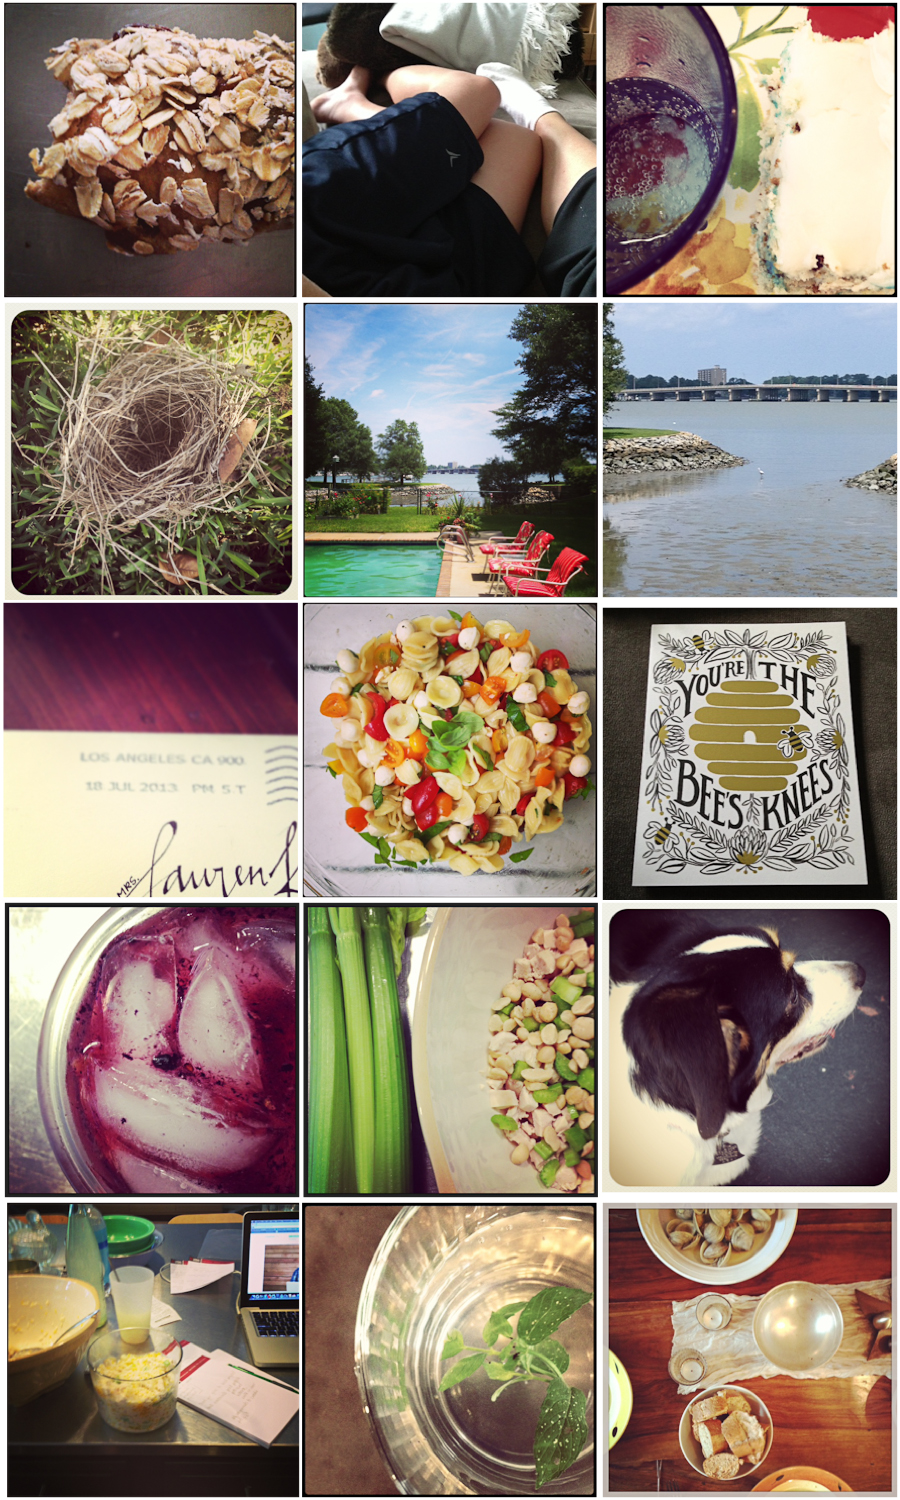 1. Museli bar from my favorite bread lady | 2. Post sleepover snuggle | 3. Birthday cake | 4. Found treasure | 5. Treasured time | 6. Local wildlife at low tide | 7. Unexpected delight | 8. Cheater pasta salad (recipe this week) | 9. Treasure from dear friends | 10. The cocktail (still) to be named later | 11. Cooking for the week | 12. Little Violet | 13. Busy day | 14. Refreshing water | 15. Sunday dinner